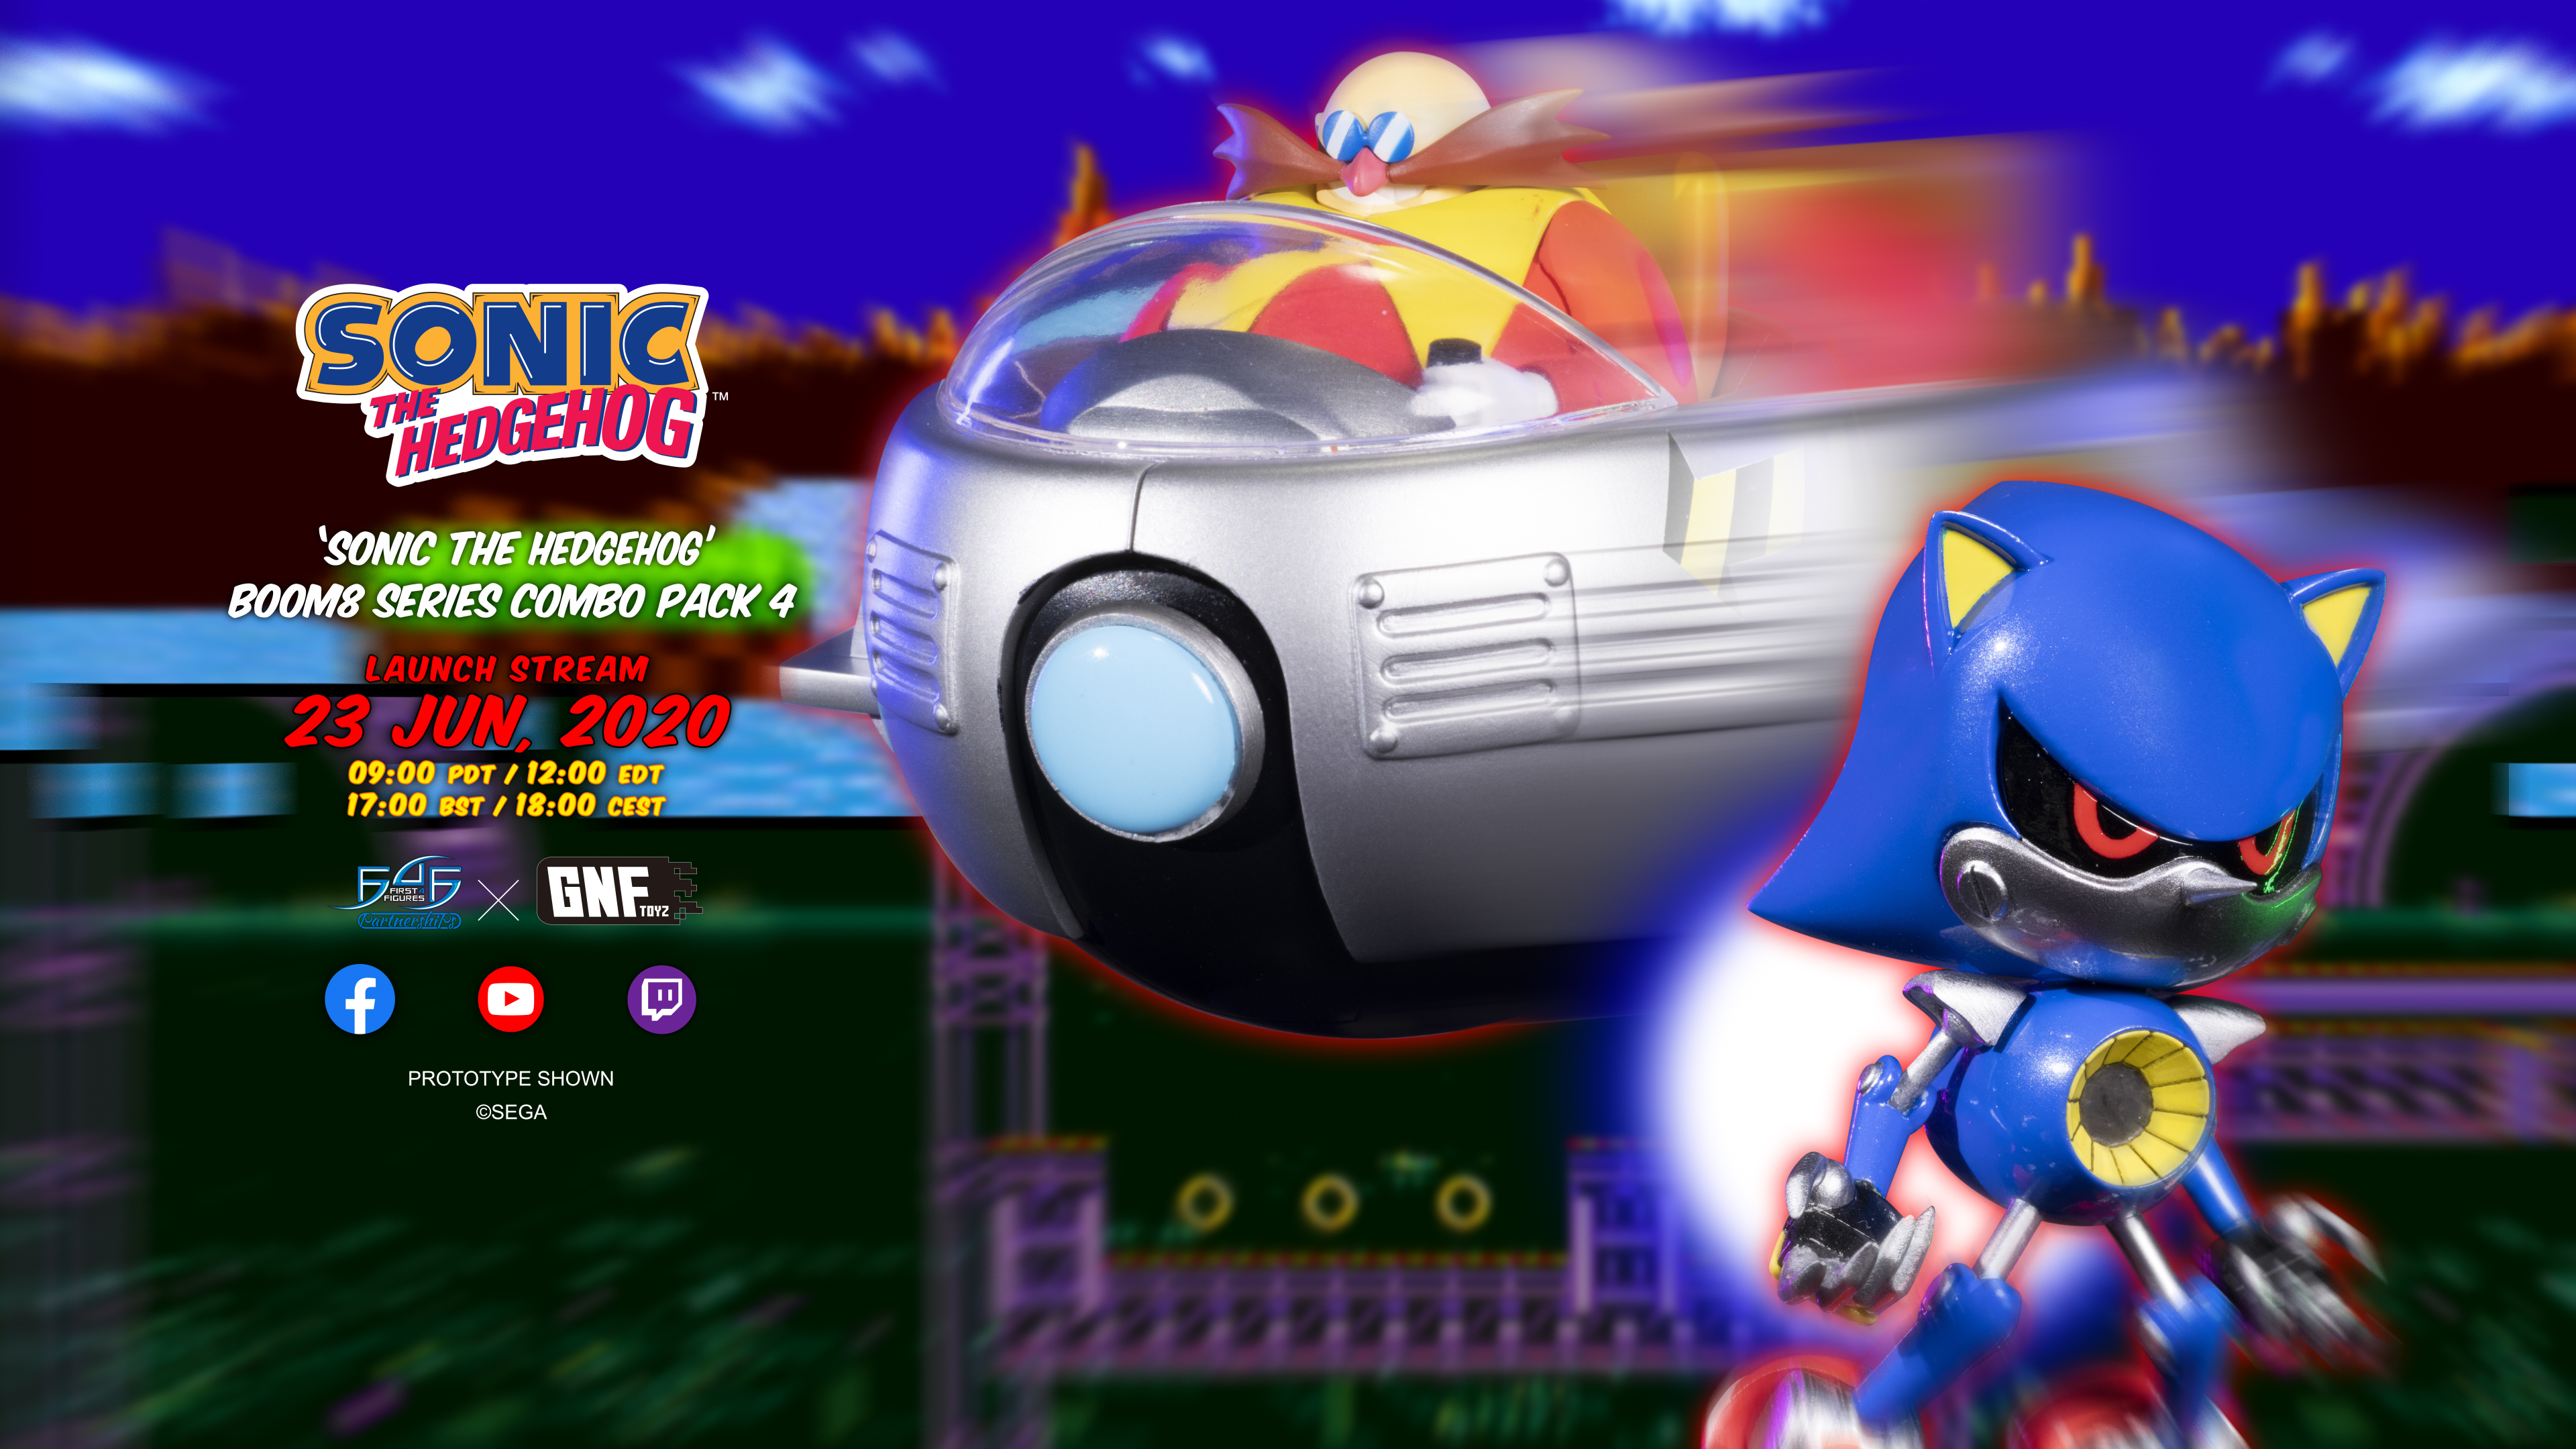 Sonic The Hedgehog Boom8 Series – Combo Pack 4 Coming Soon!